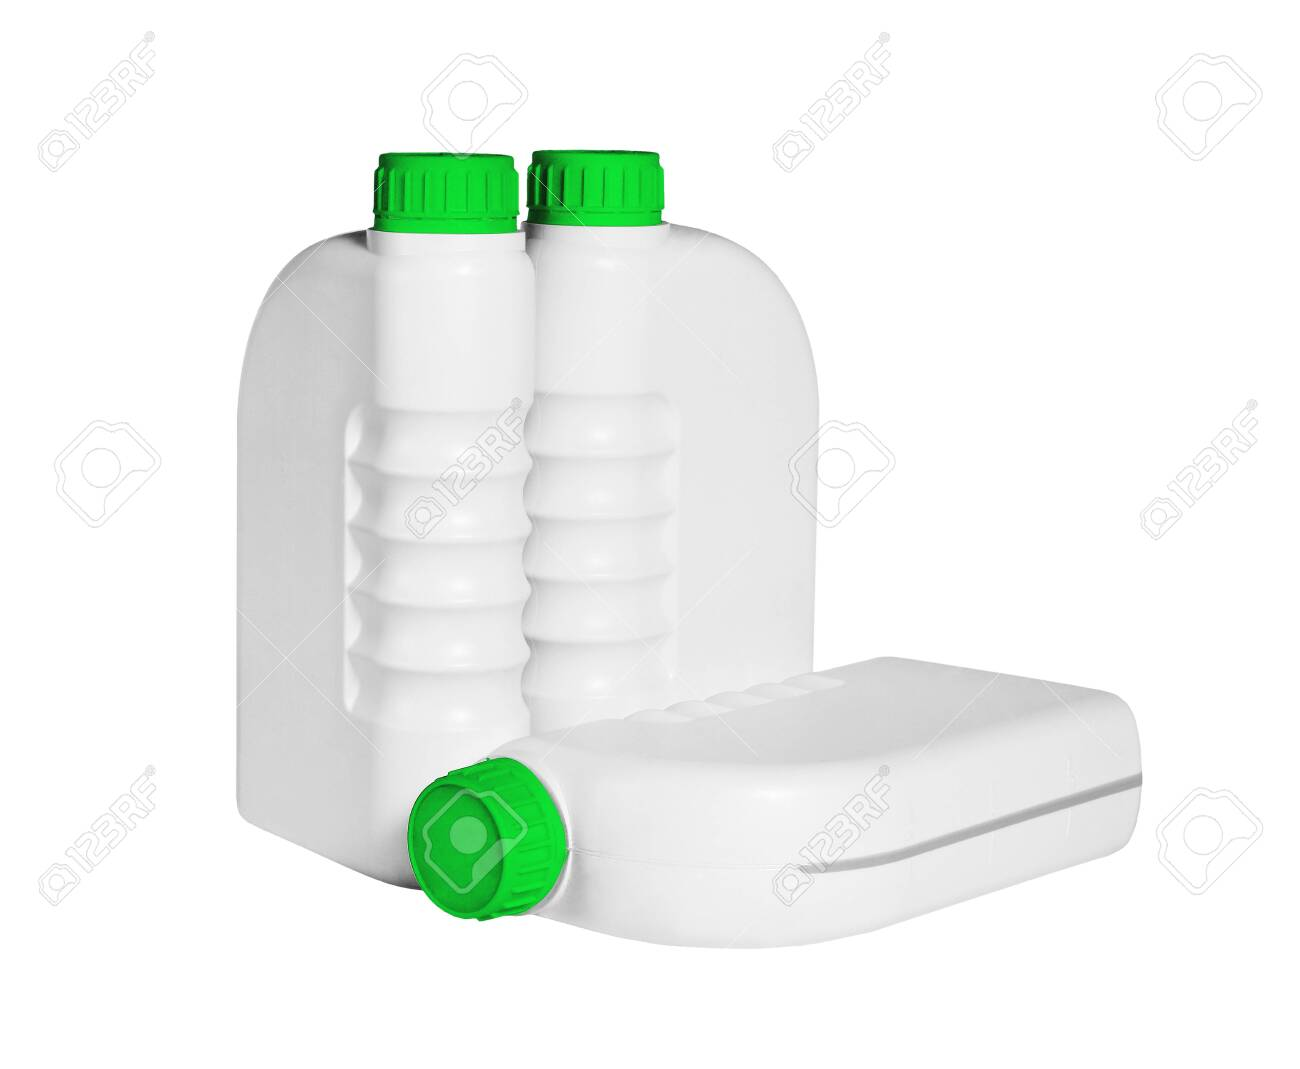 Plastic Containers for Engine Lubricants on White Background - 144795849